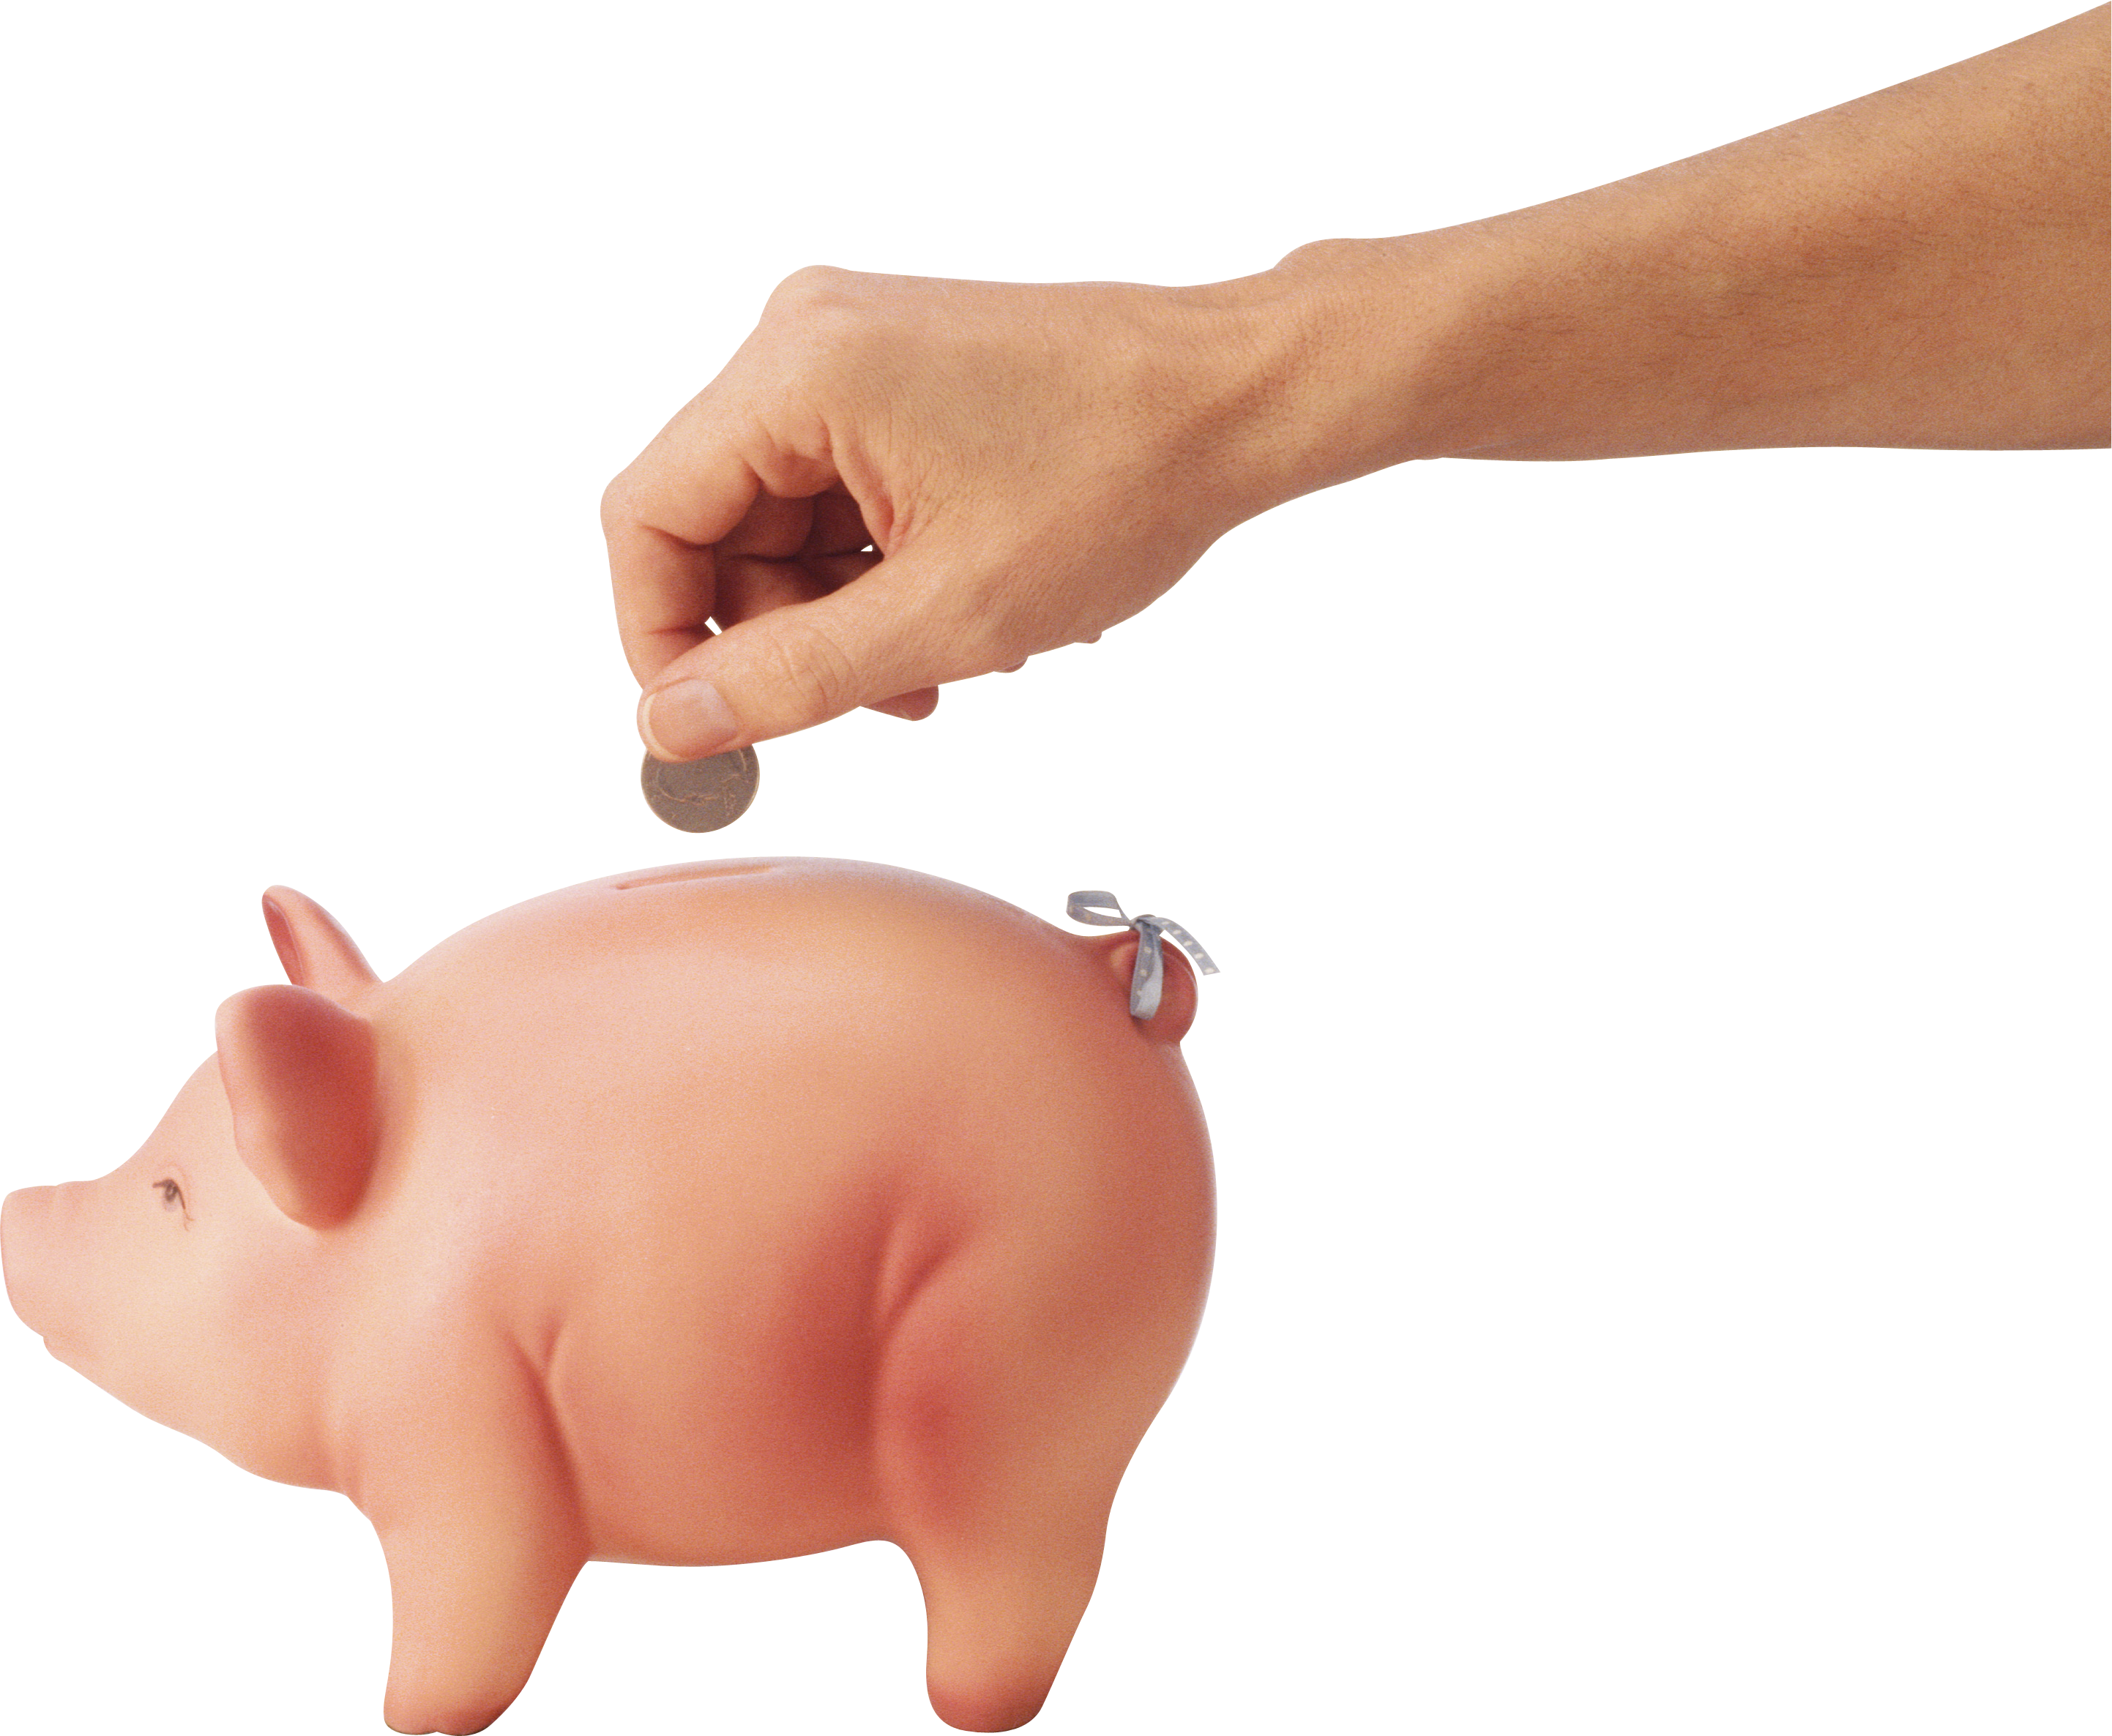 Hand clipart money. Putting into saving pig